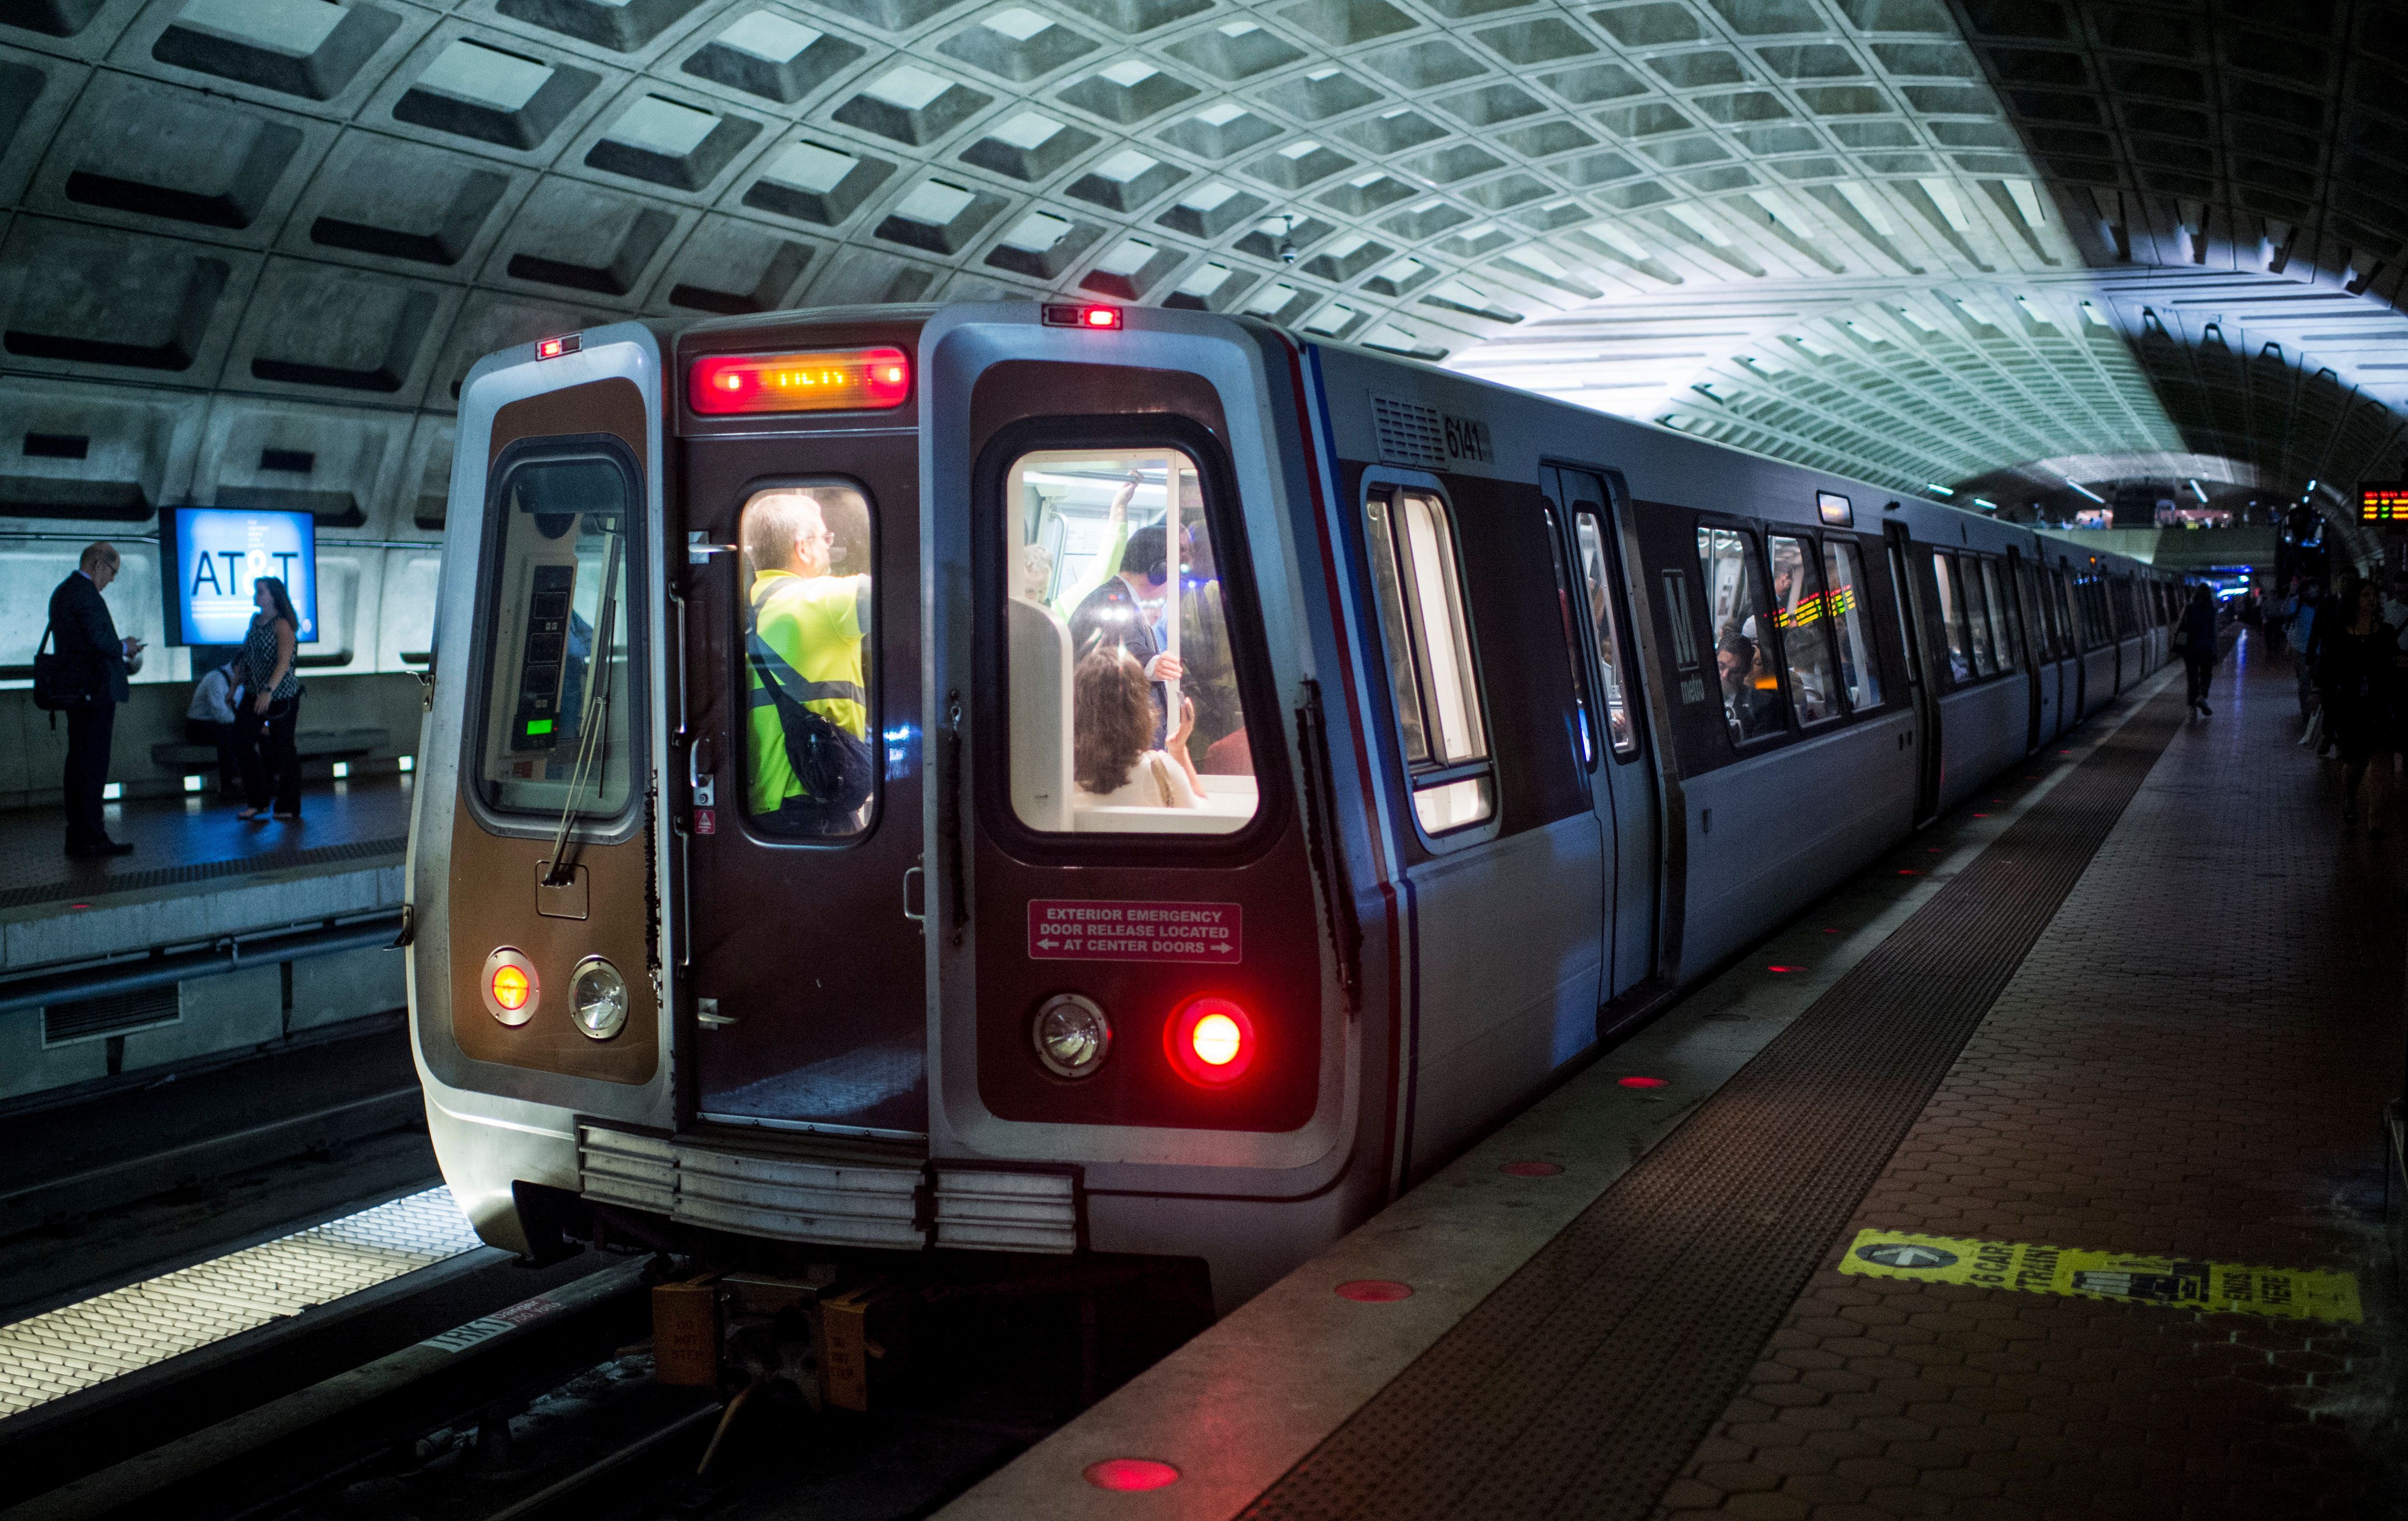 Moore wants to save 86 Metro cars from one of the decommissioned fleets. Each car would yield a pair of 560-square-foot,